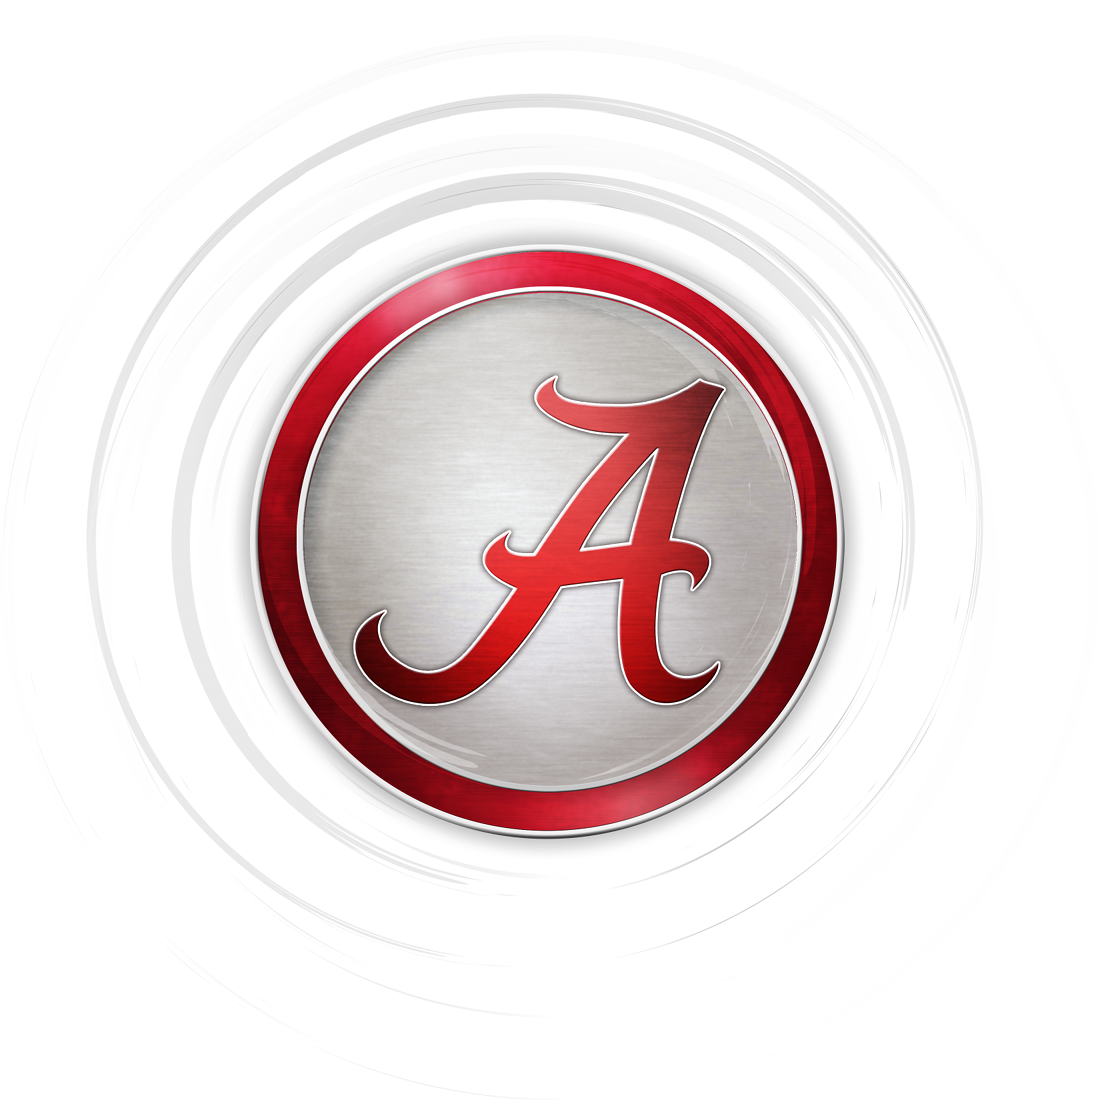 [The University of Alabama]